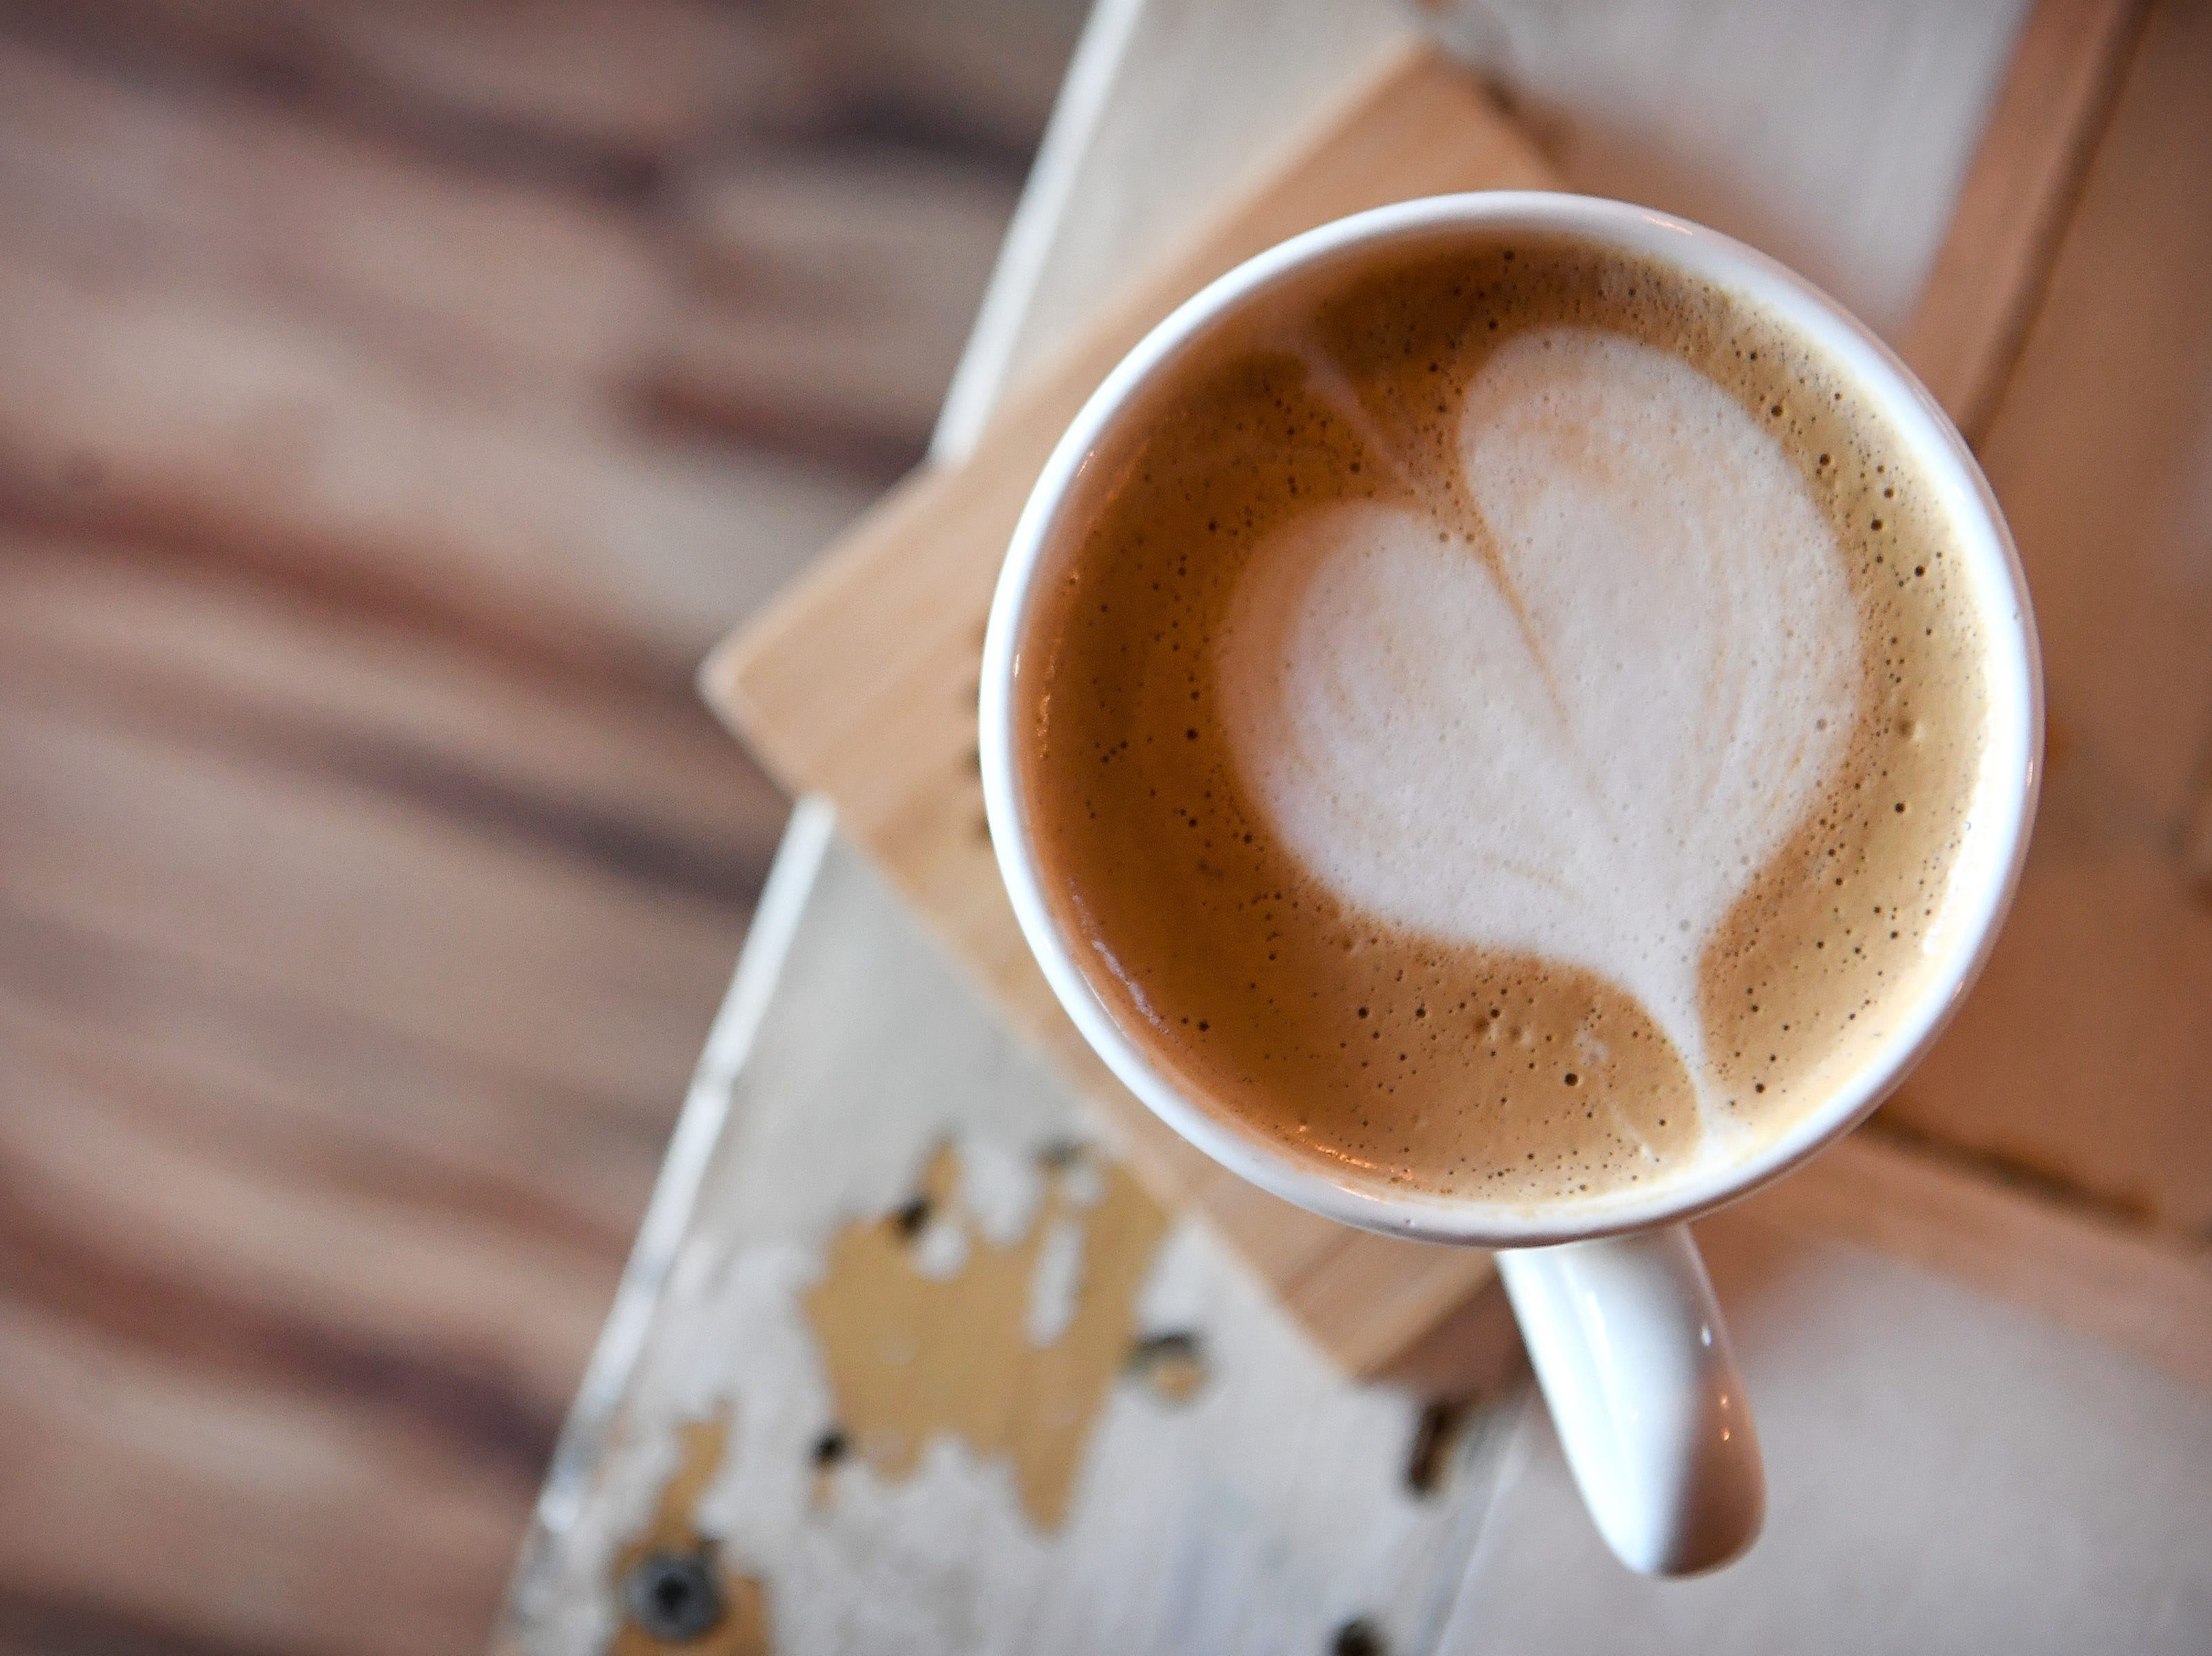 A heart adorns the top of a latte at the Beehive Coffee Bar in Arden.